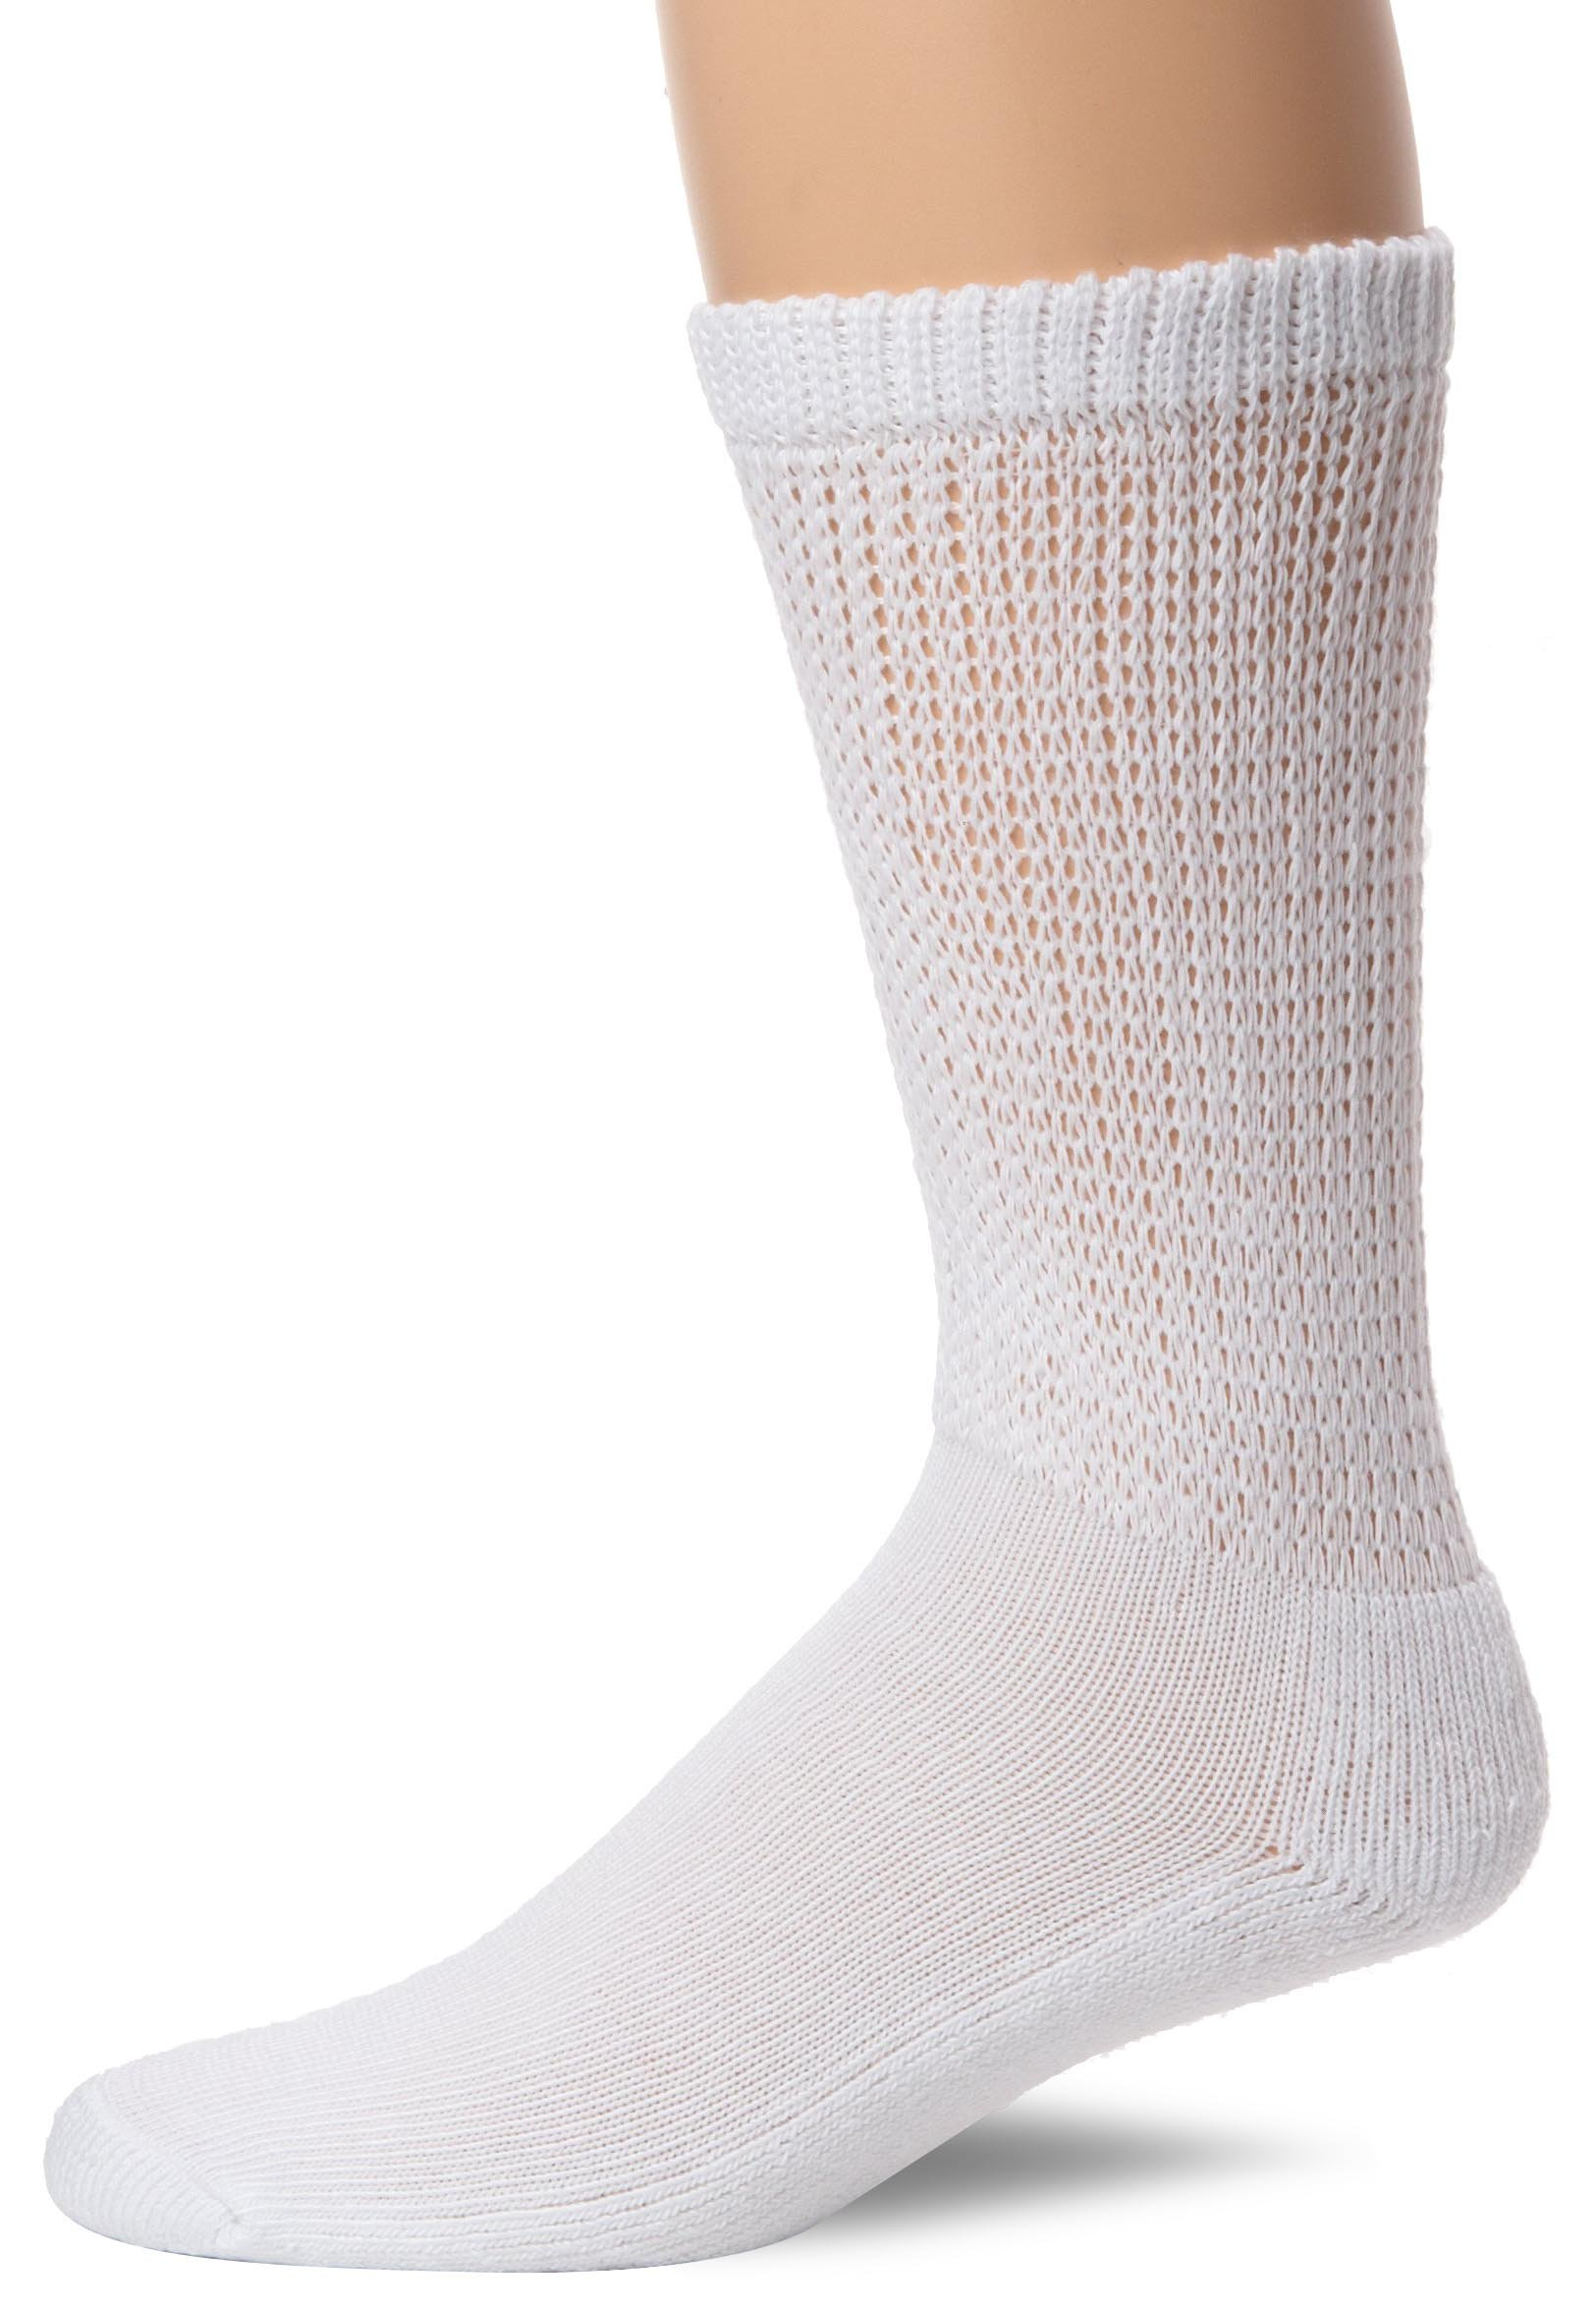 Dr. Scholl's Men's Diabetes and Circulatory Odor Resistant Crew Socks